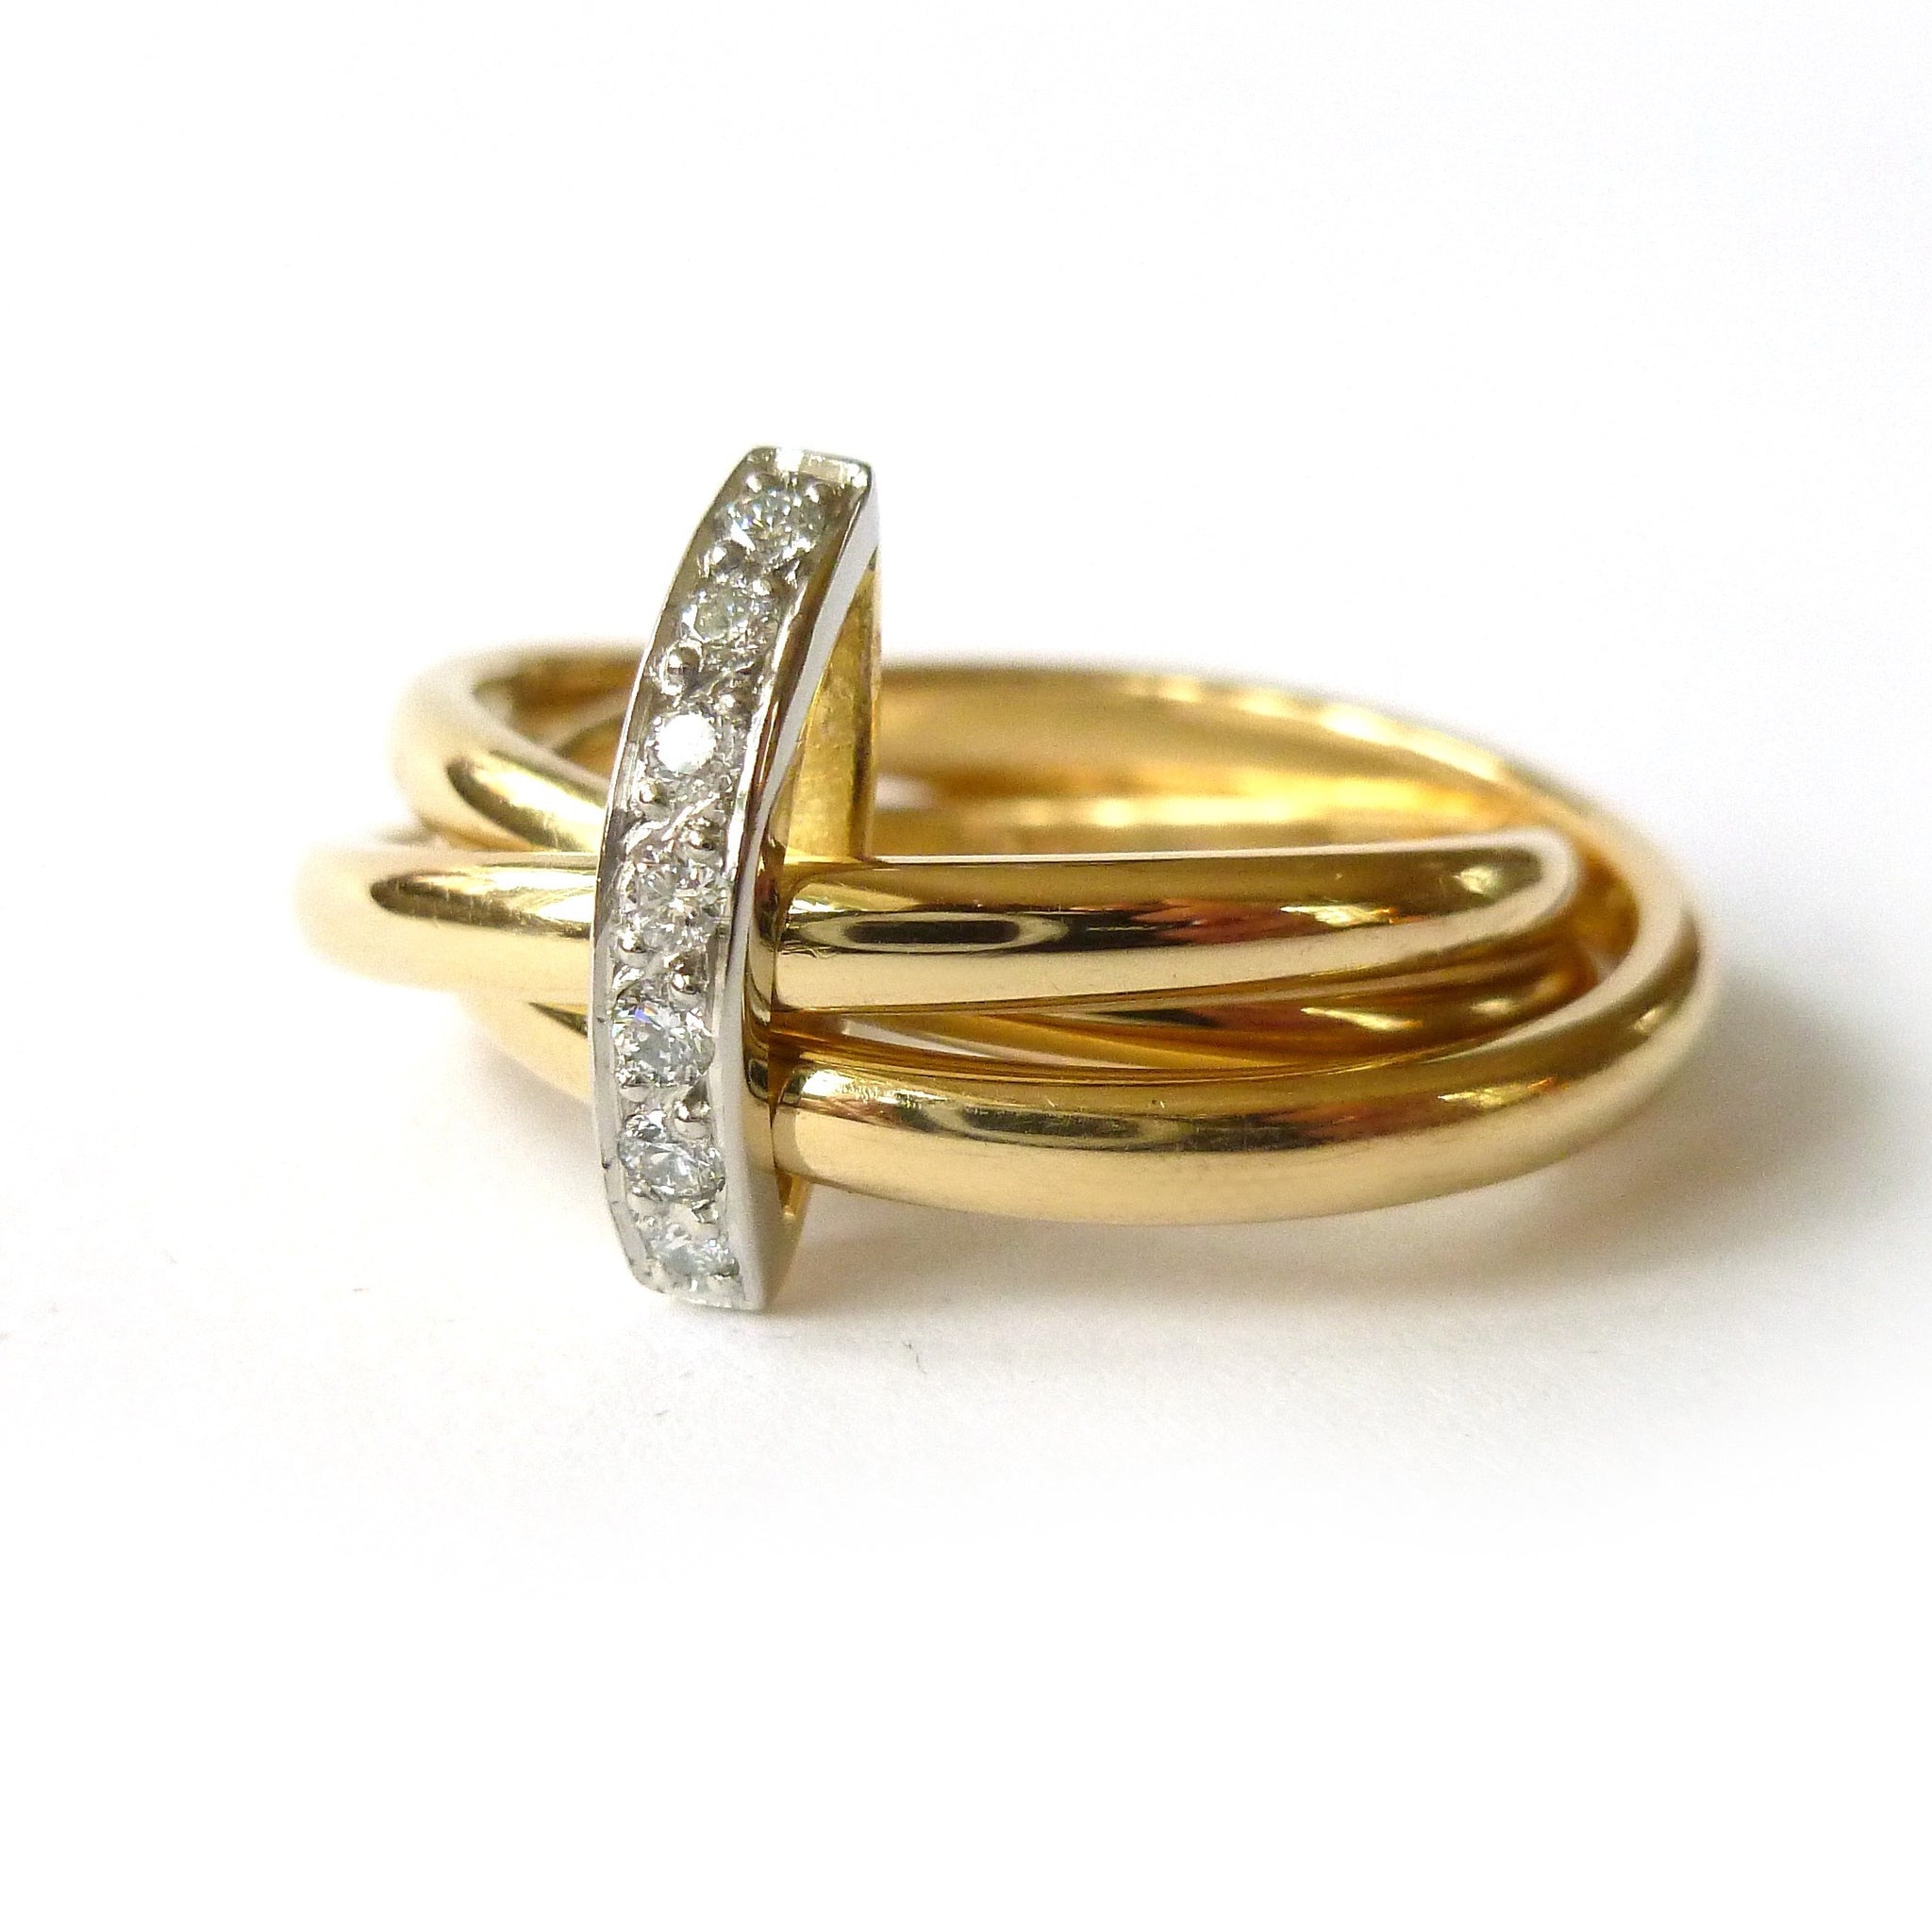 Wedding Ring Designs Gold | Handmade Unique Chunky Two Tone 18k Gold And Diamond Three Band Ring